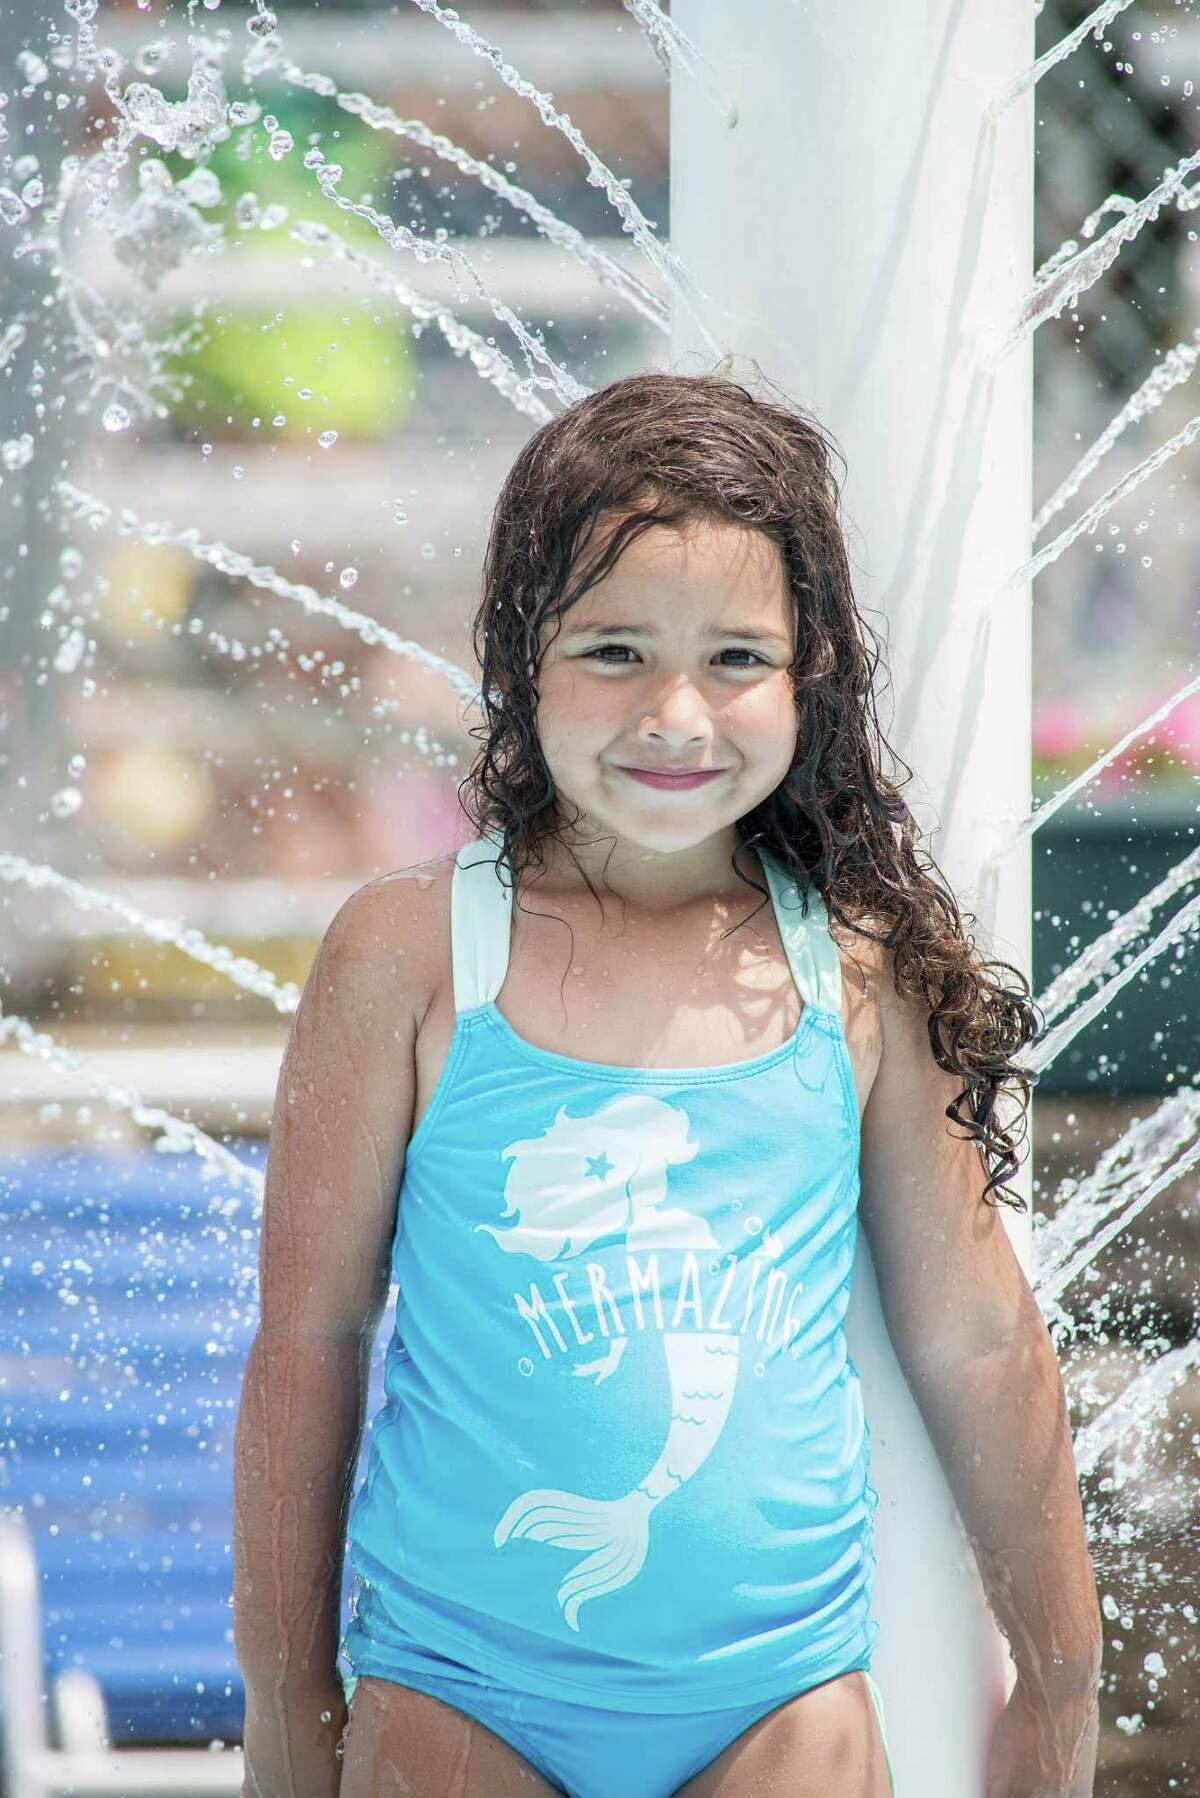 Five-year-old Briana Betancourt cools down at the Y.